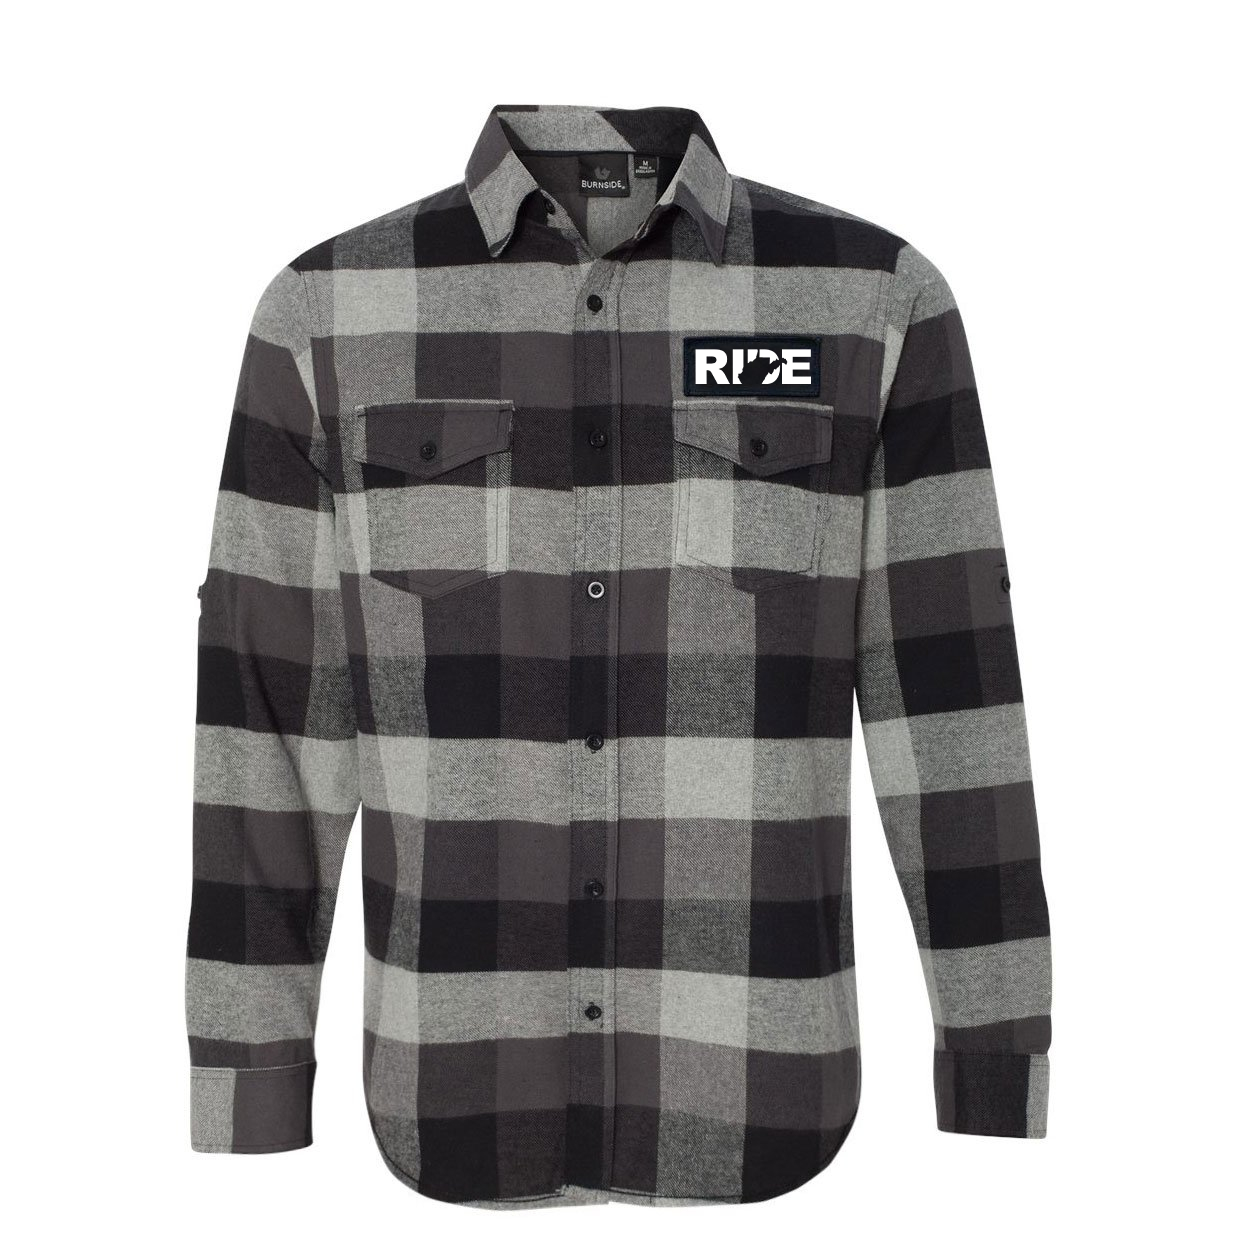 Ride West Virginia Classic Unisex Long Sleeve Woven Patch Flannel Shirt Black/Gray (White Logo)